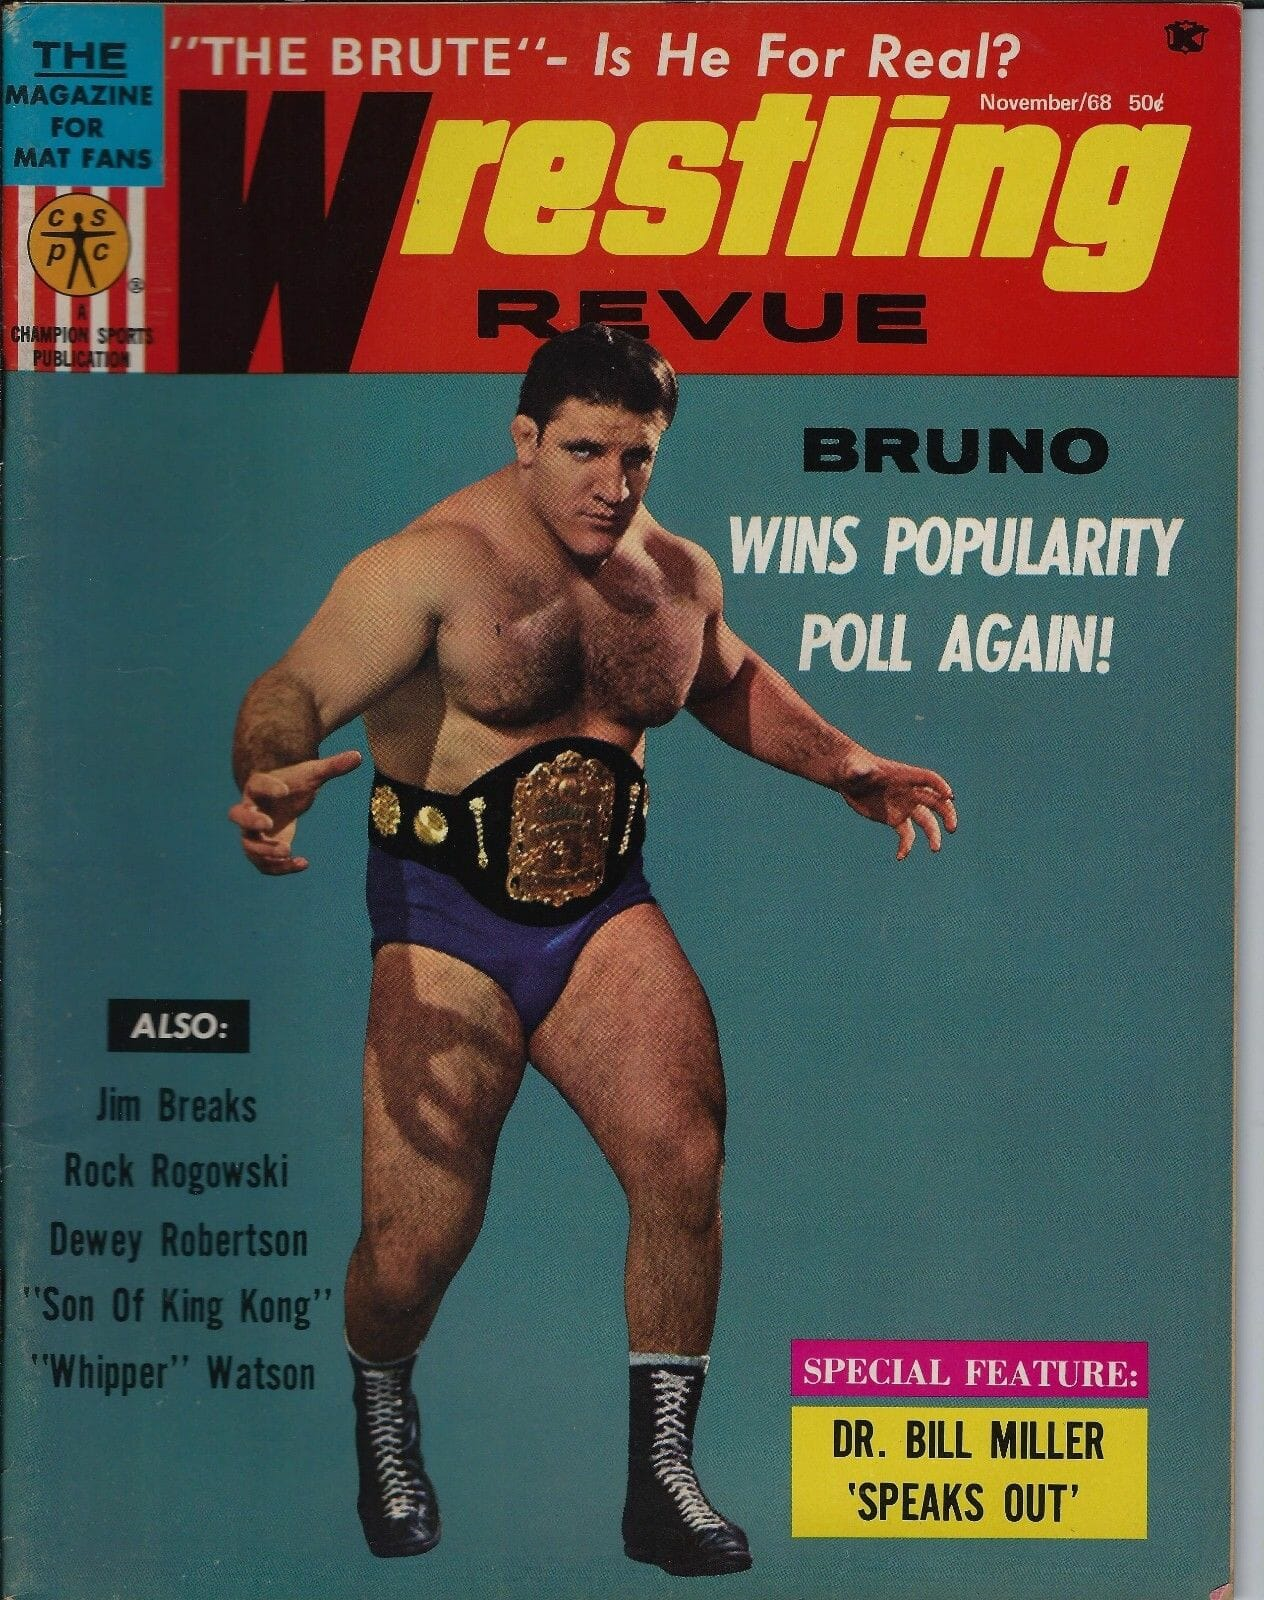 Bruno Sammartino on the front cover of Wrestling Revue, November 1968. Wrestling Revue, just one of the many magazines I spent hours reading in my youth.